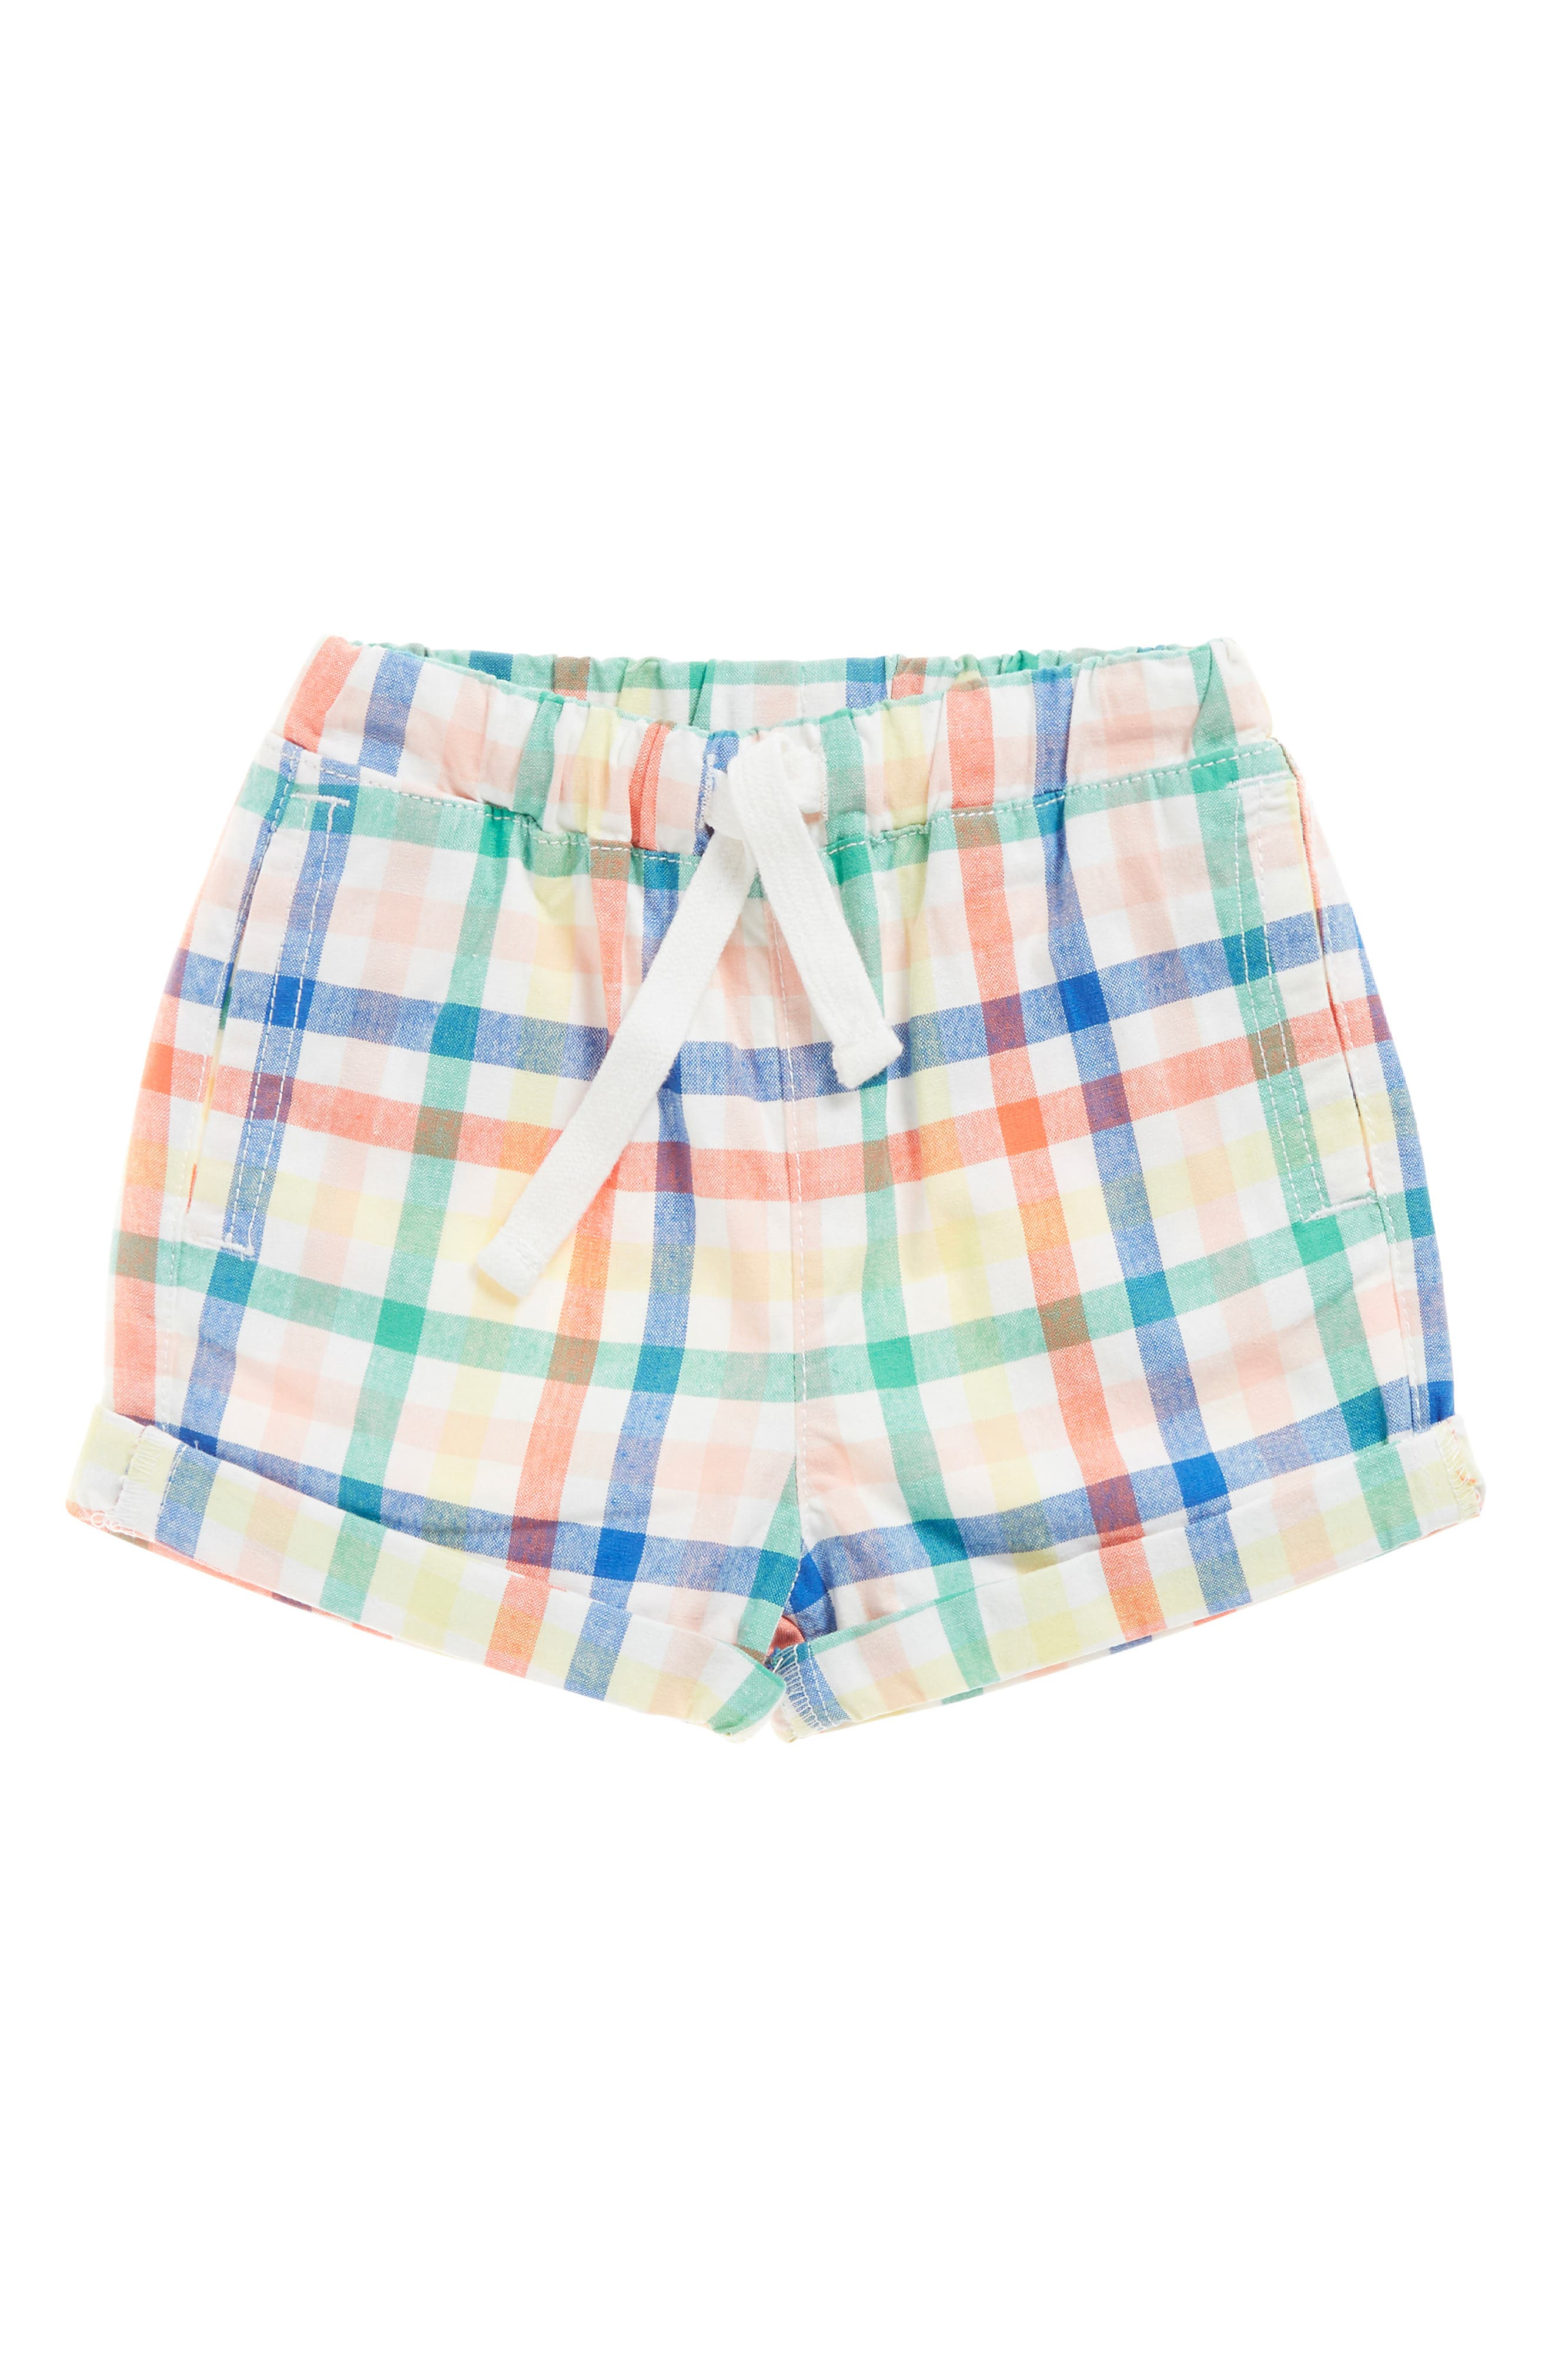 SEED HERITAGE Plaid Woven Shorts, Main, color, MULTI